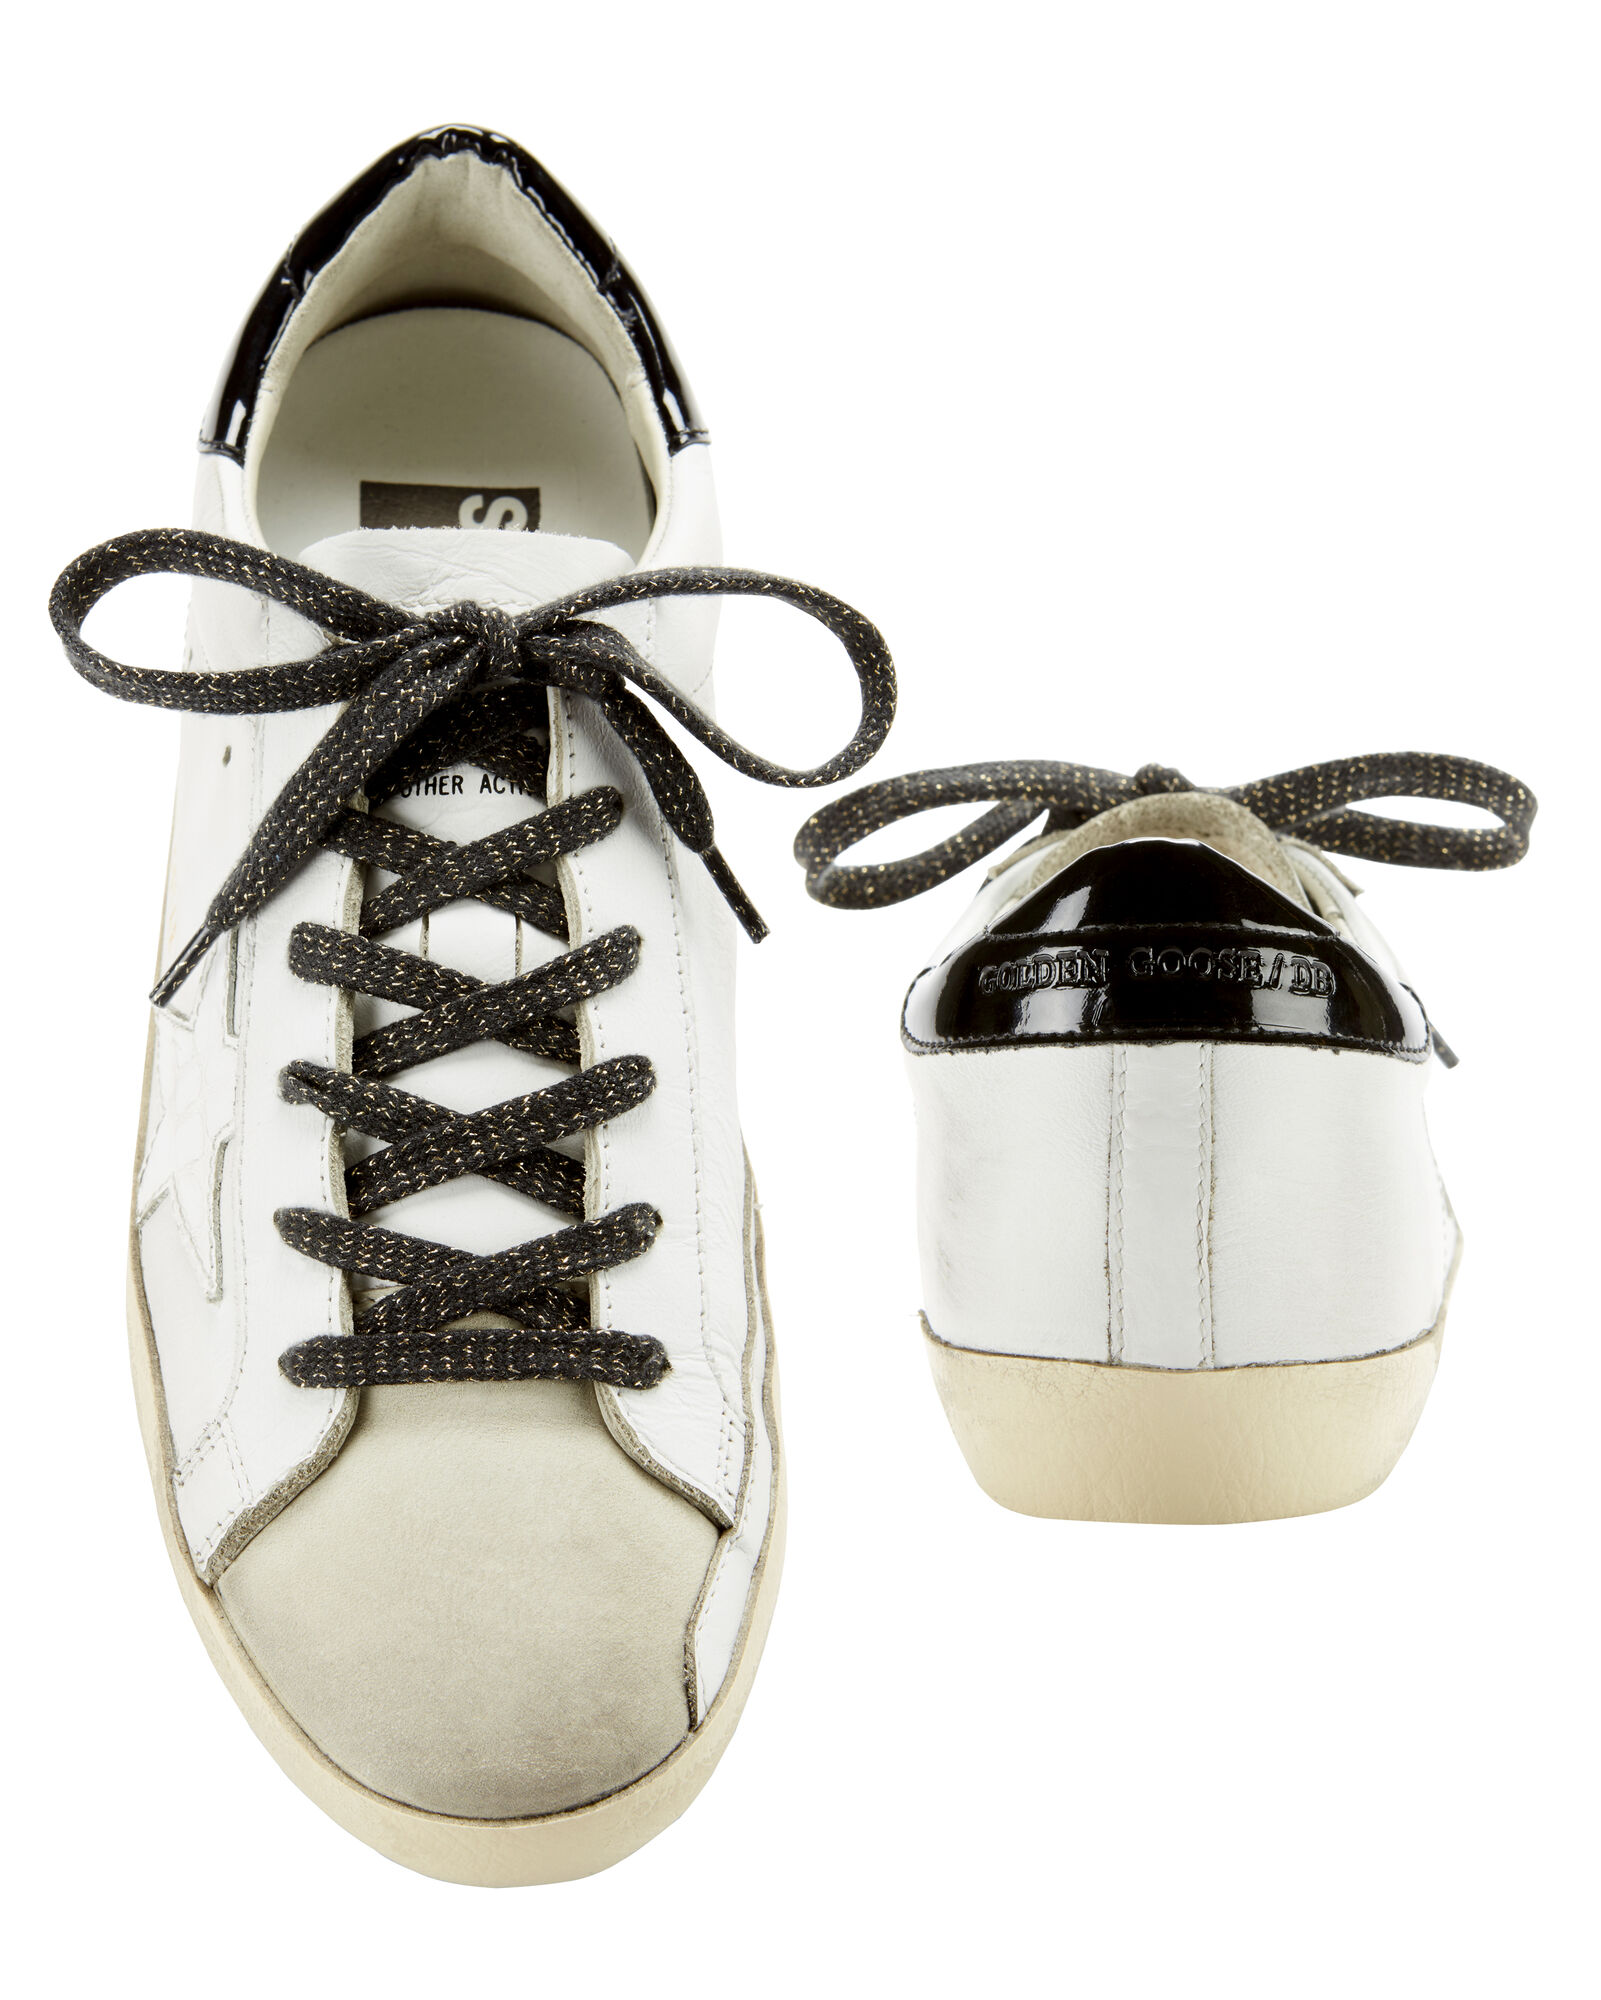 Superstar Crocodile Star White Leather Sneakers, WHITE, hi-res